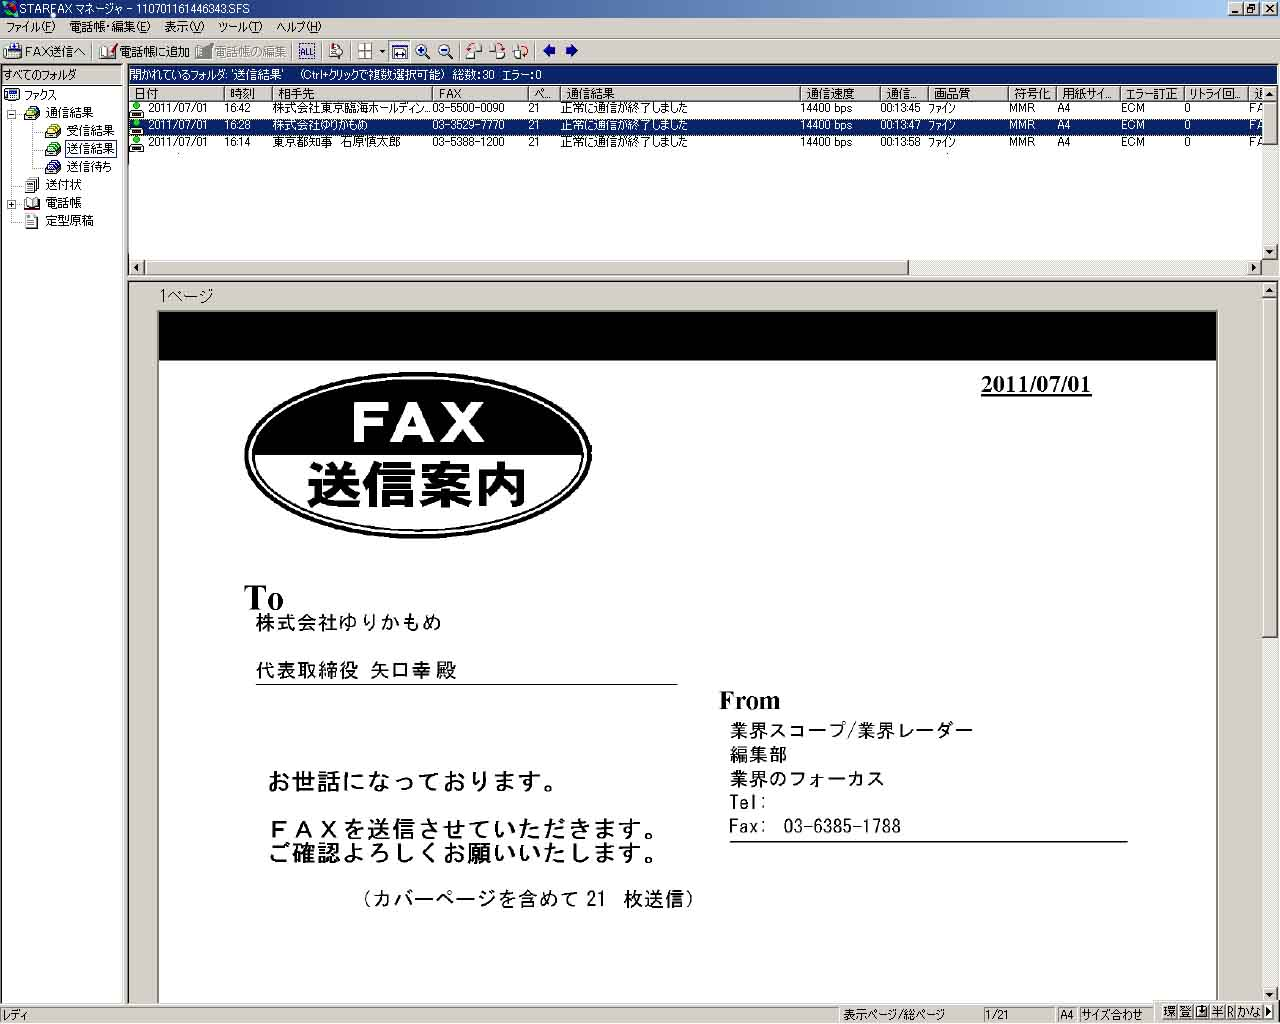 FAX送信ログ